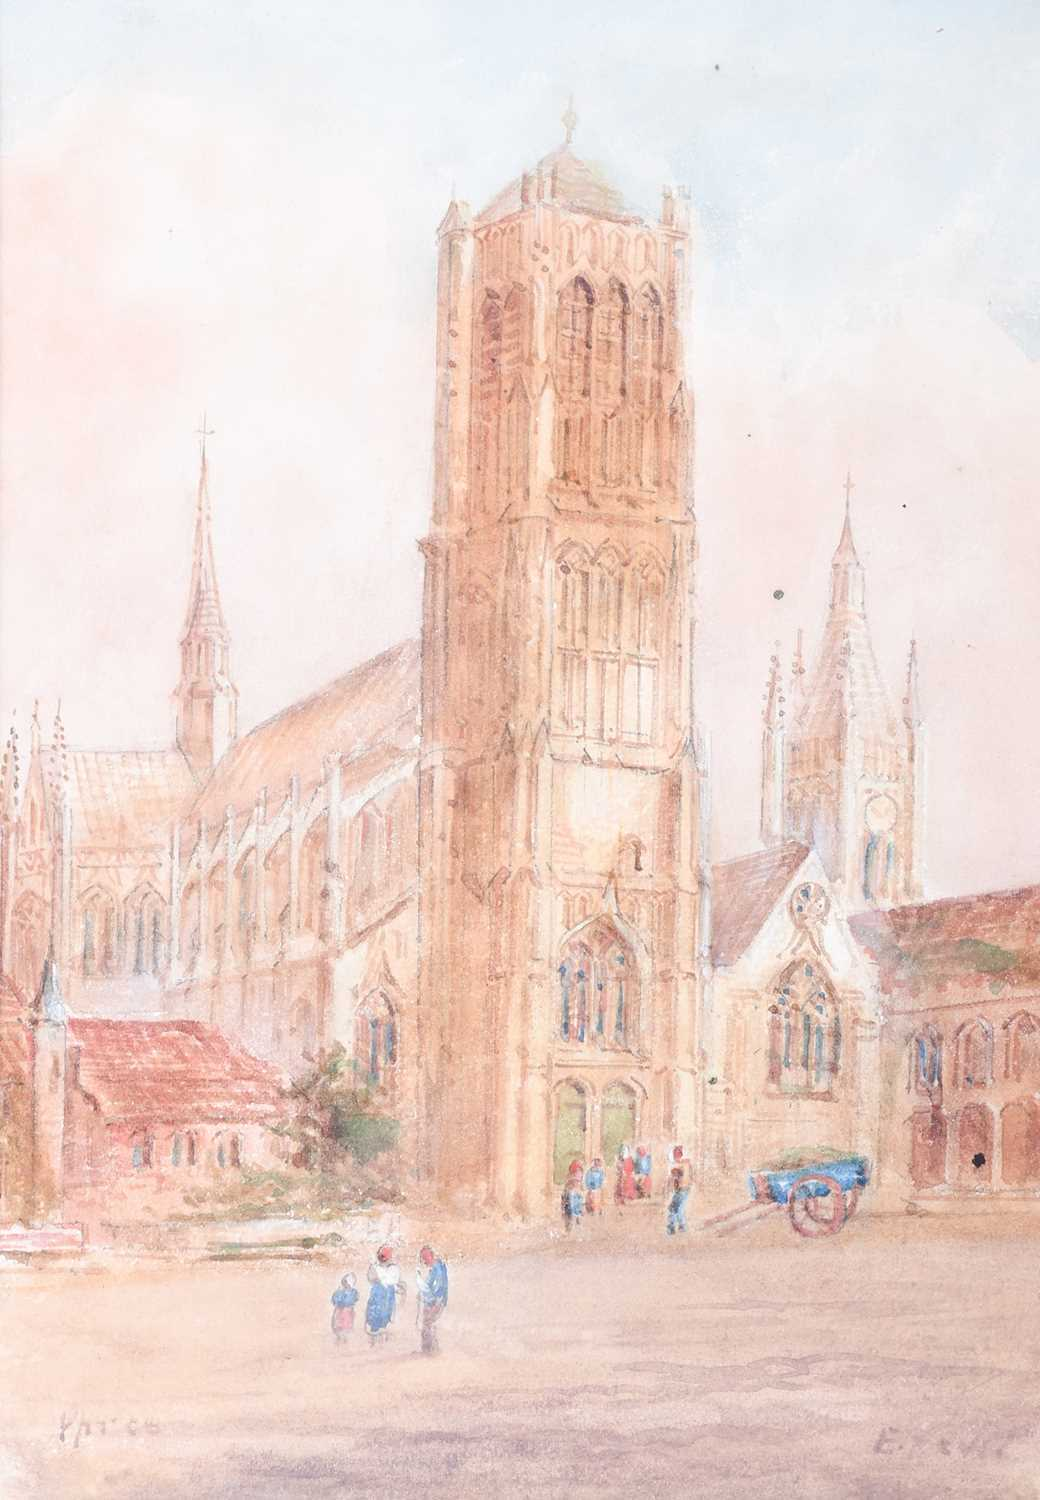 Edward Nevil (British, fl: 1880 - 1900) 'Ypres' & 'Malines', signed, watercolour, a pair, 27 x 19cm - Image 2 of 7